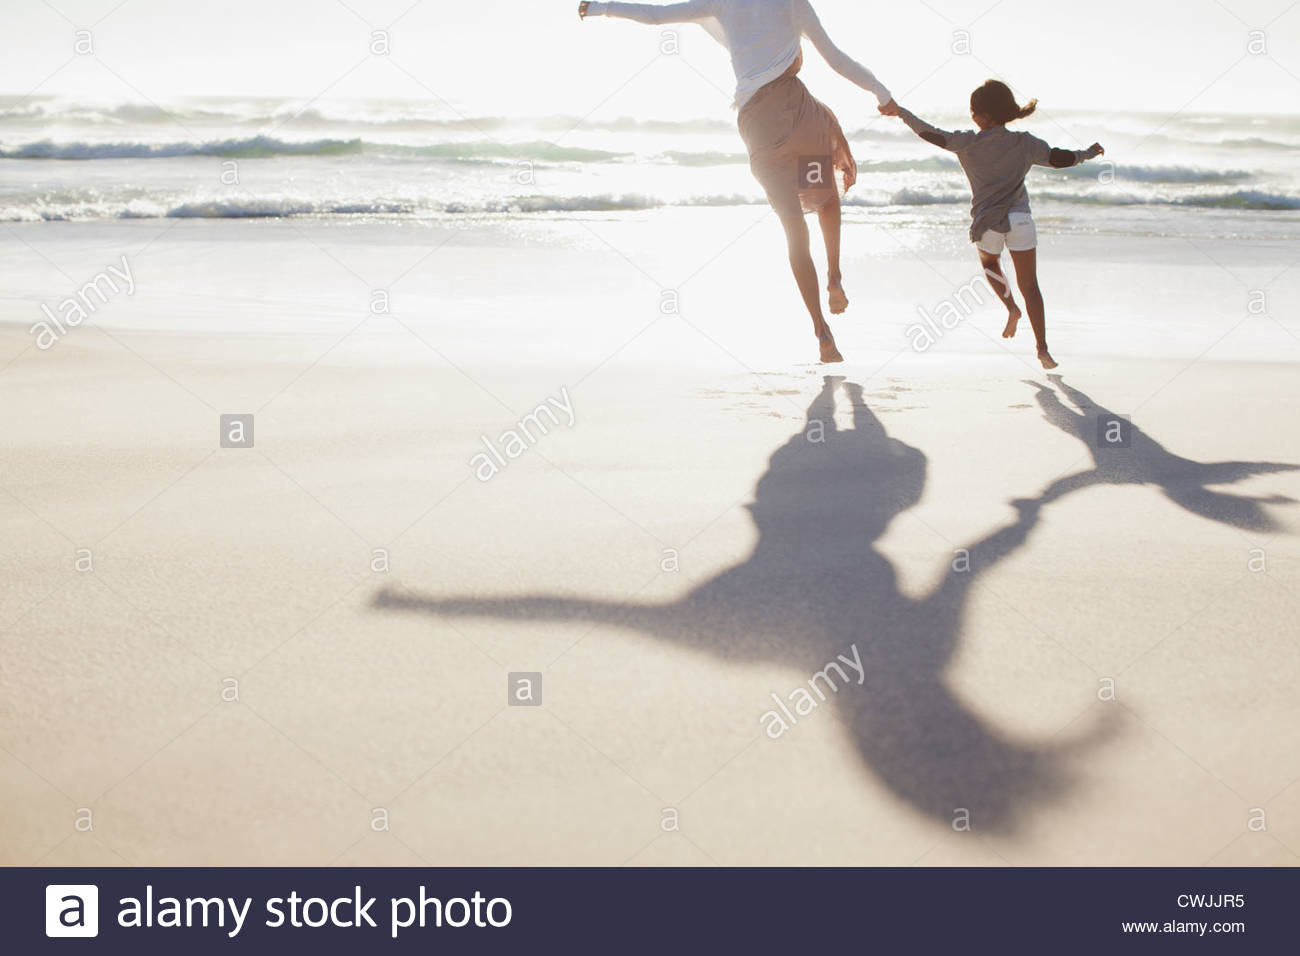 Mother and daughter holding hands and running on sunny beach - Stock Image